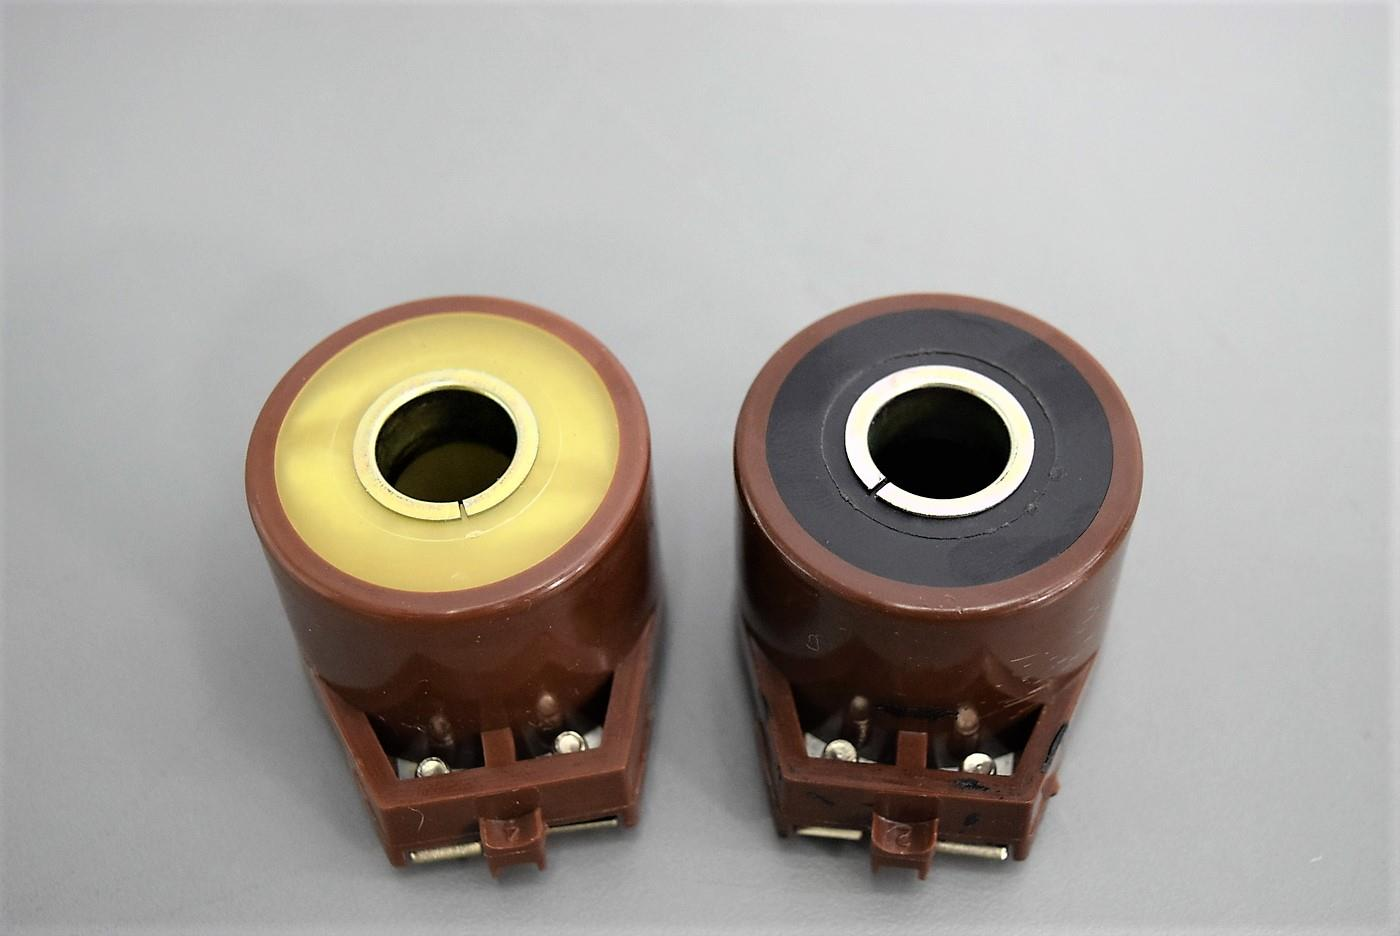 Lot of 2 Goyen CG062114 Solenoid Coils with Warranty